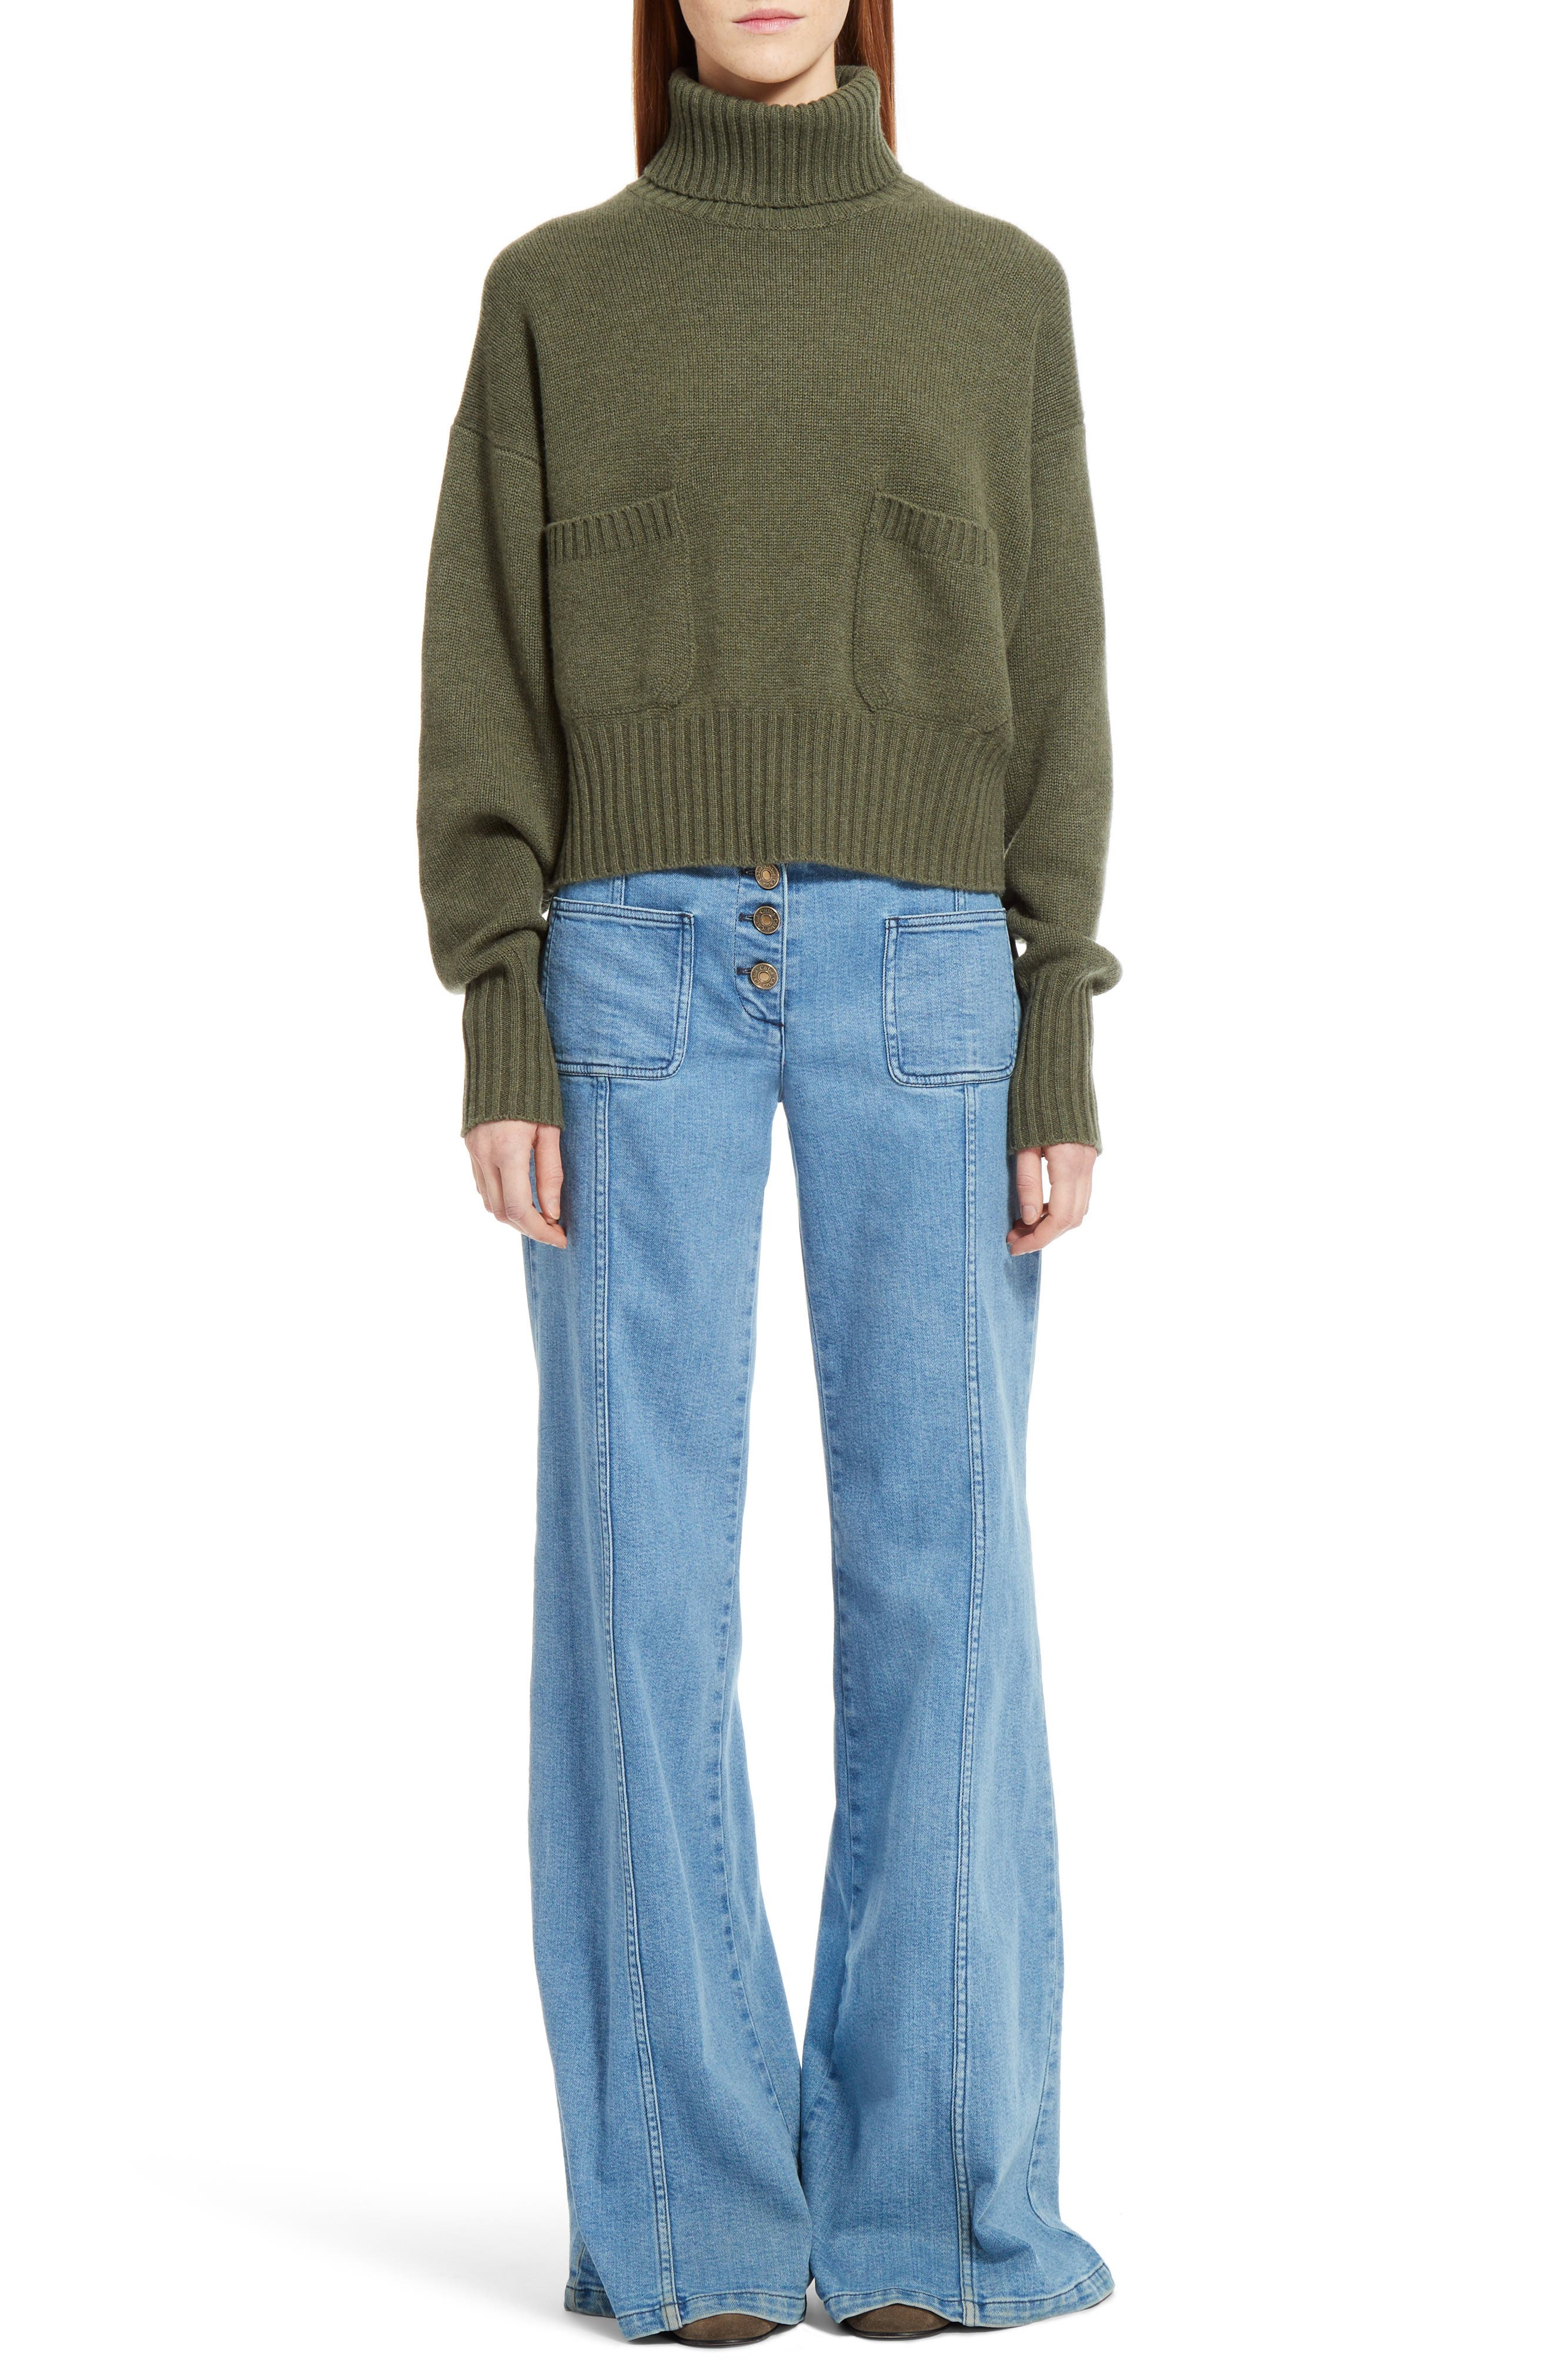 CHLOÉ Iconic Cashmere Turtlenck Sweater